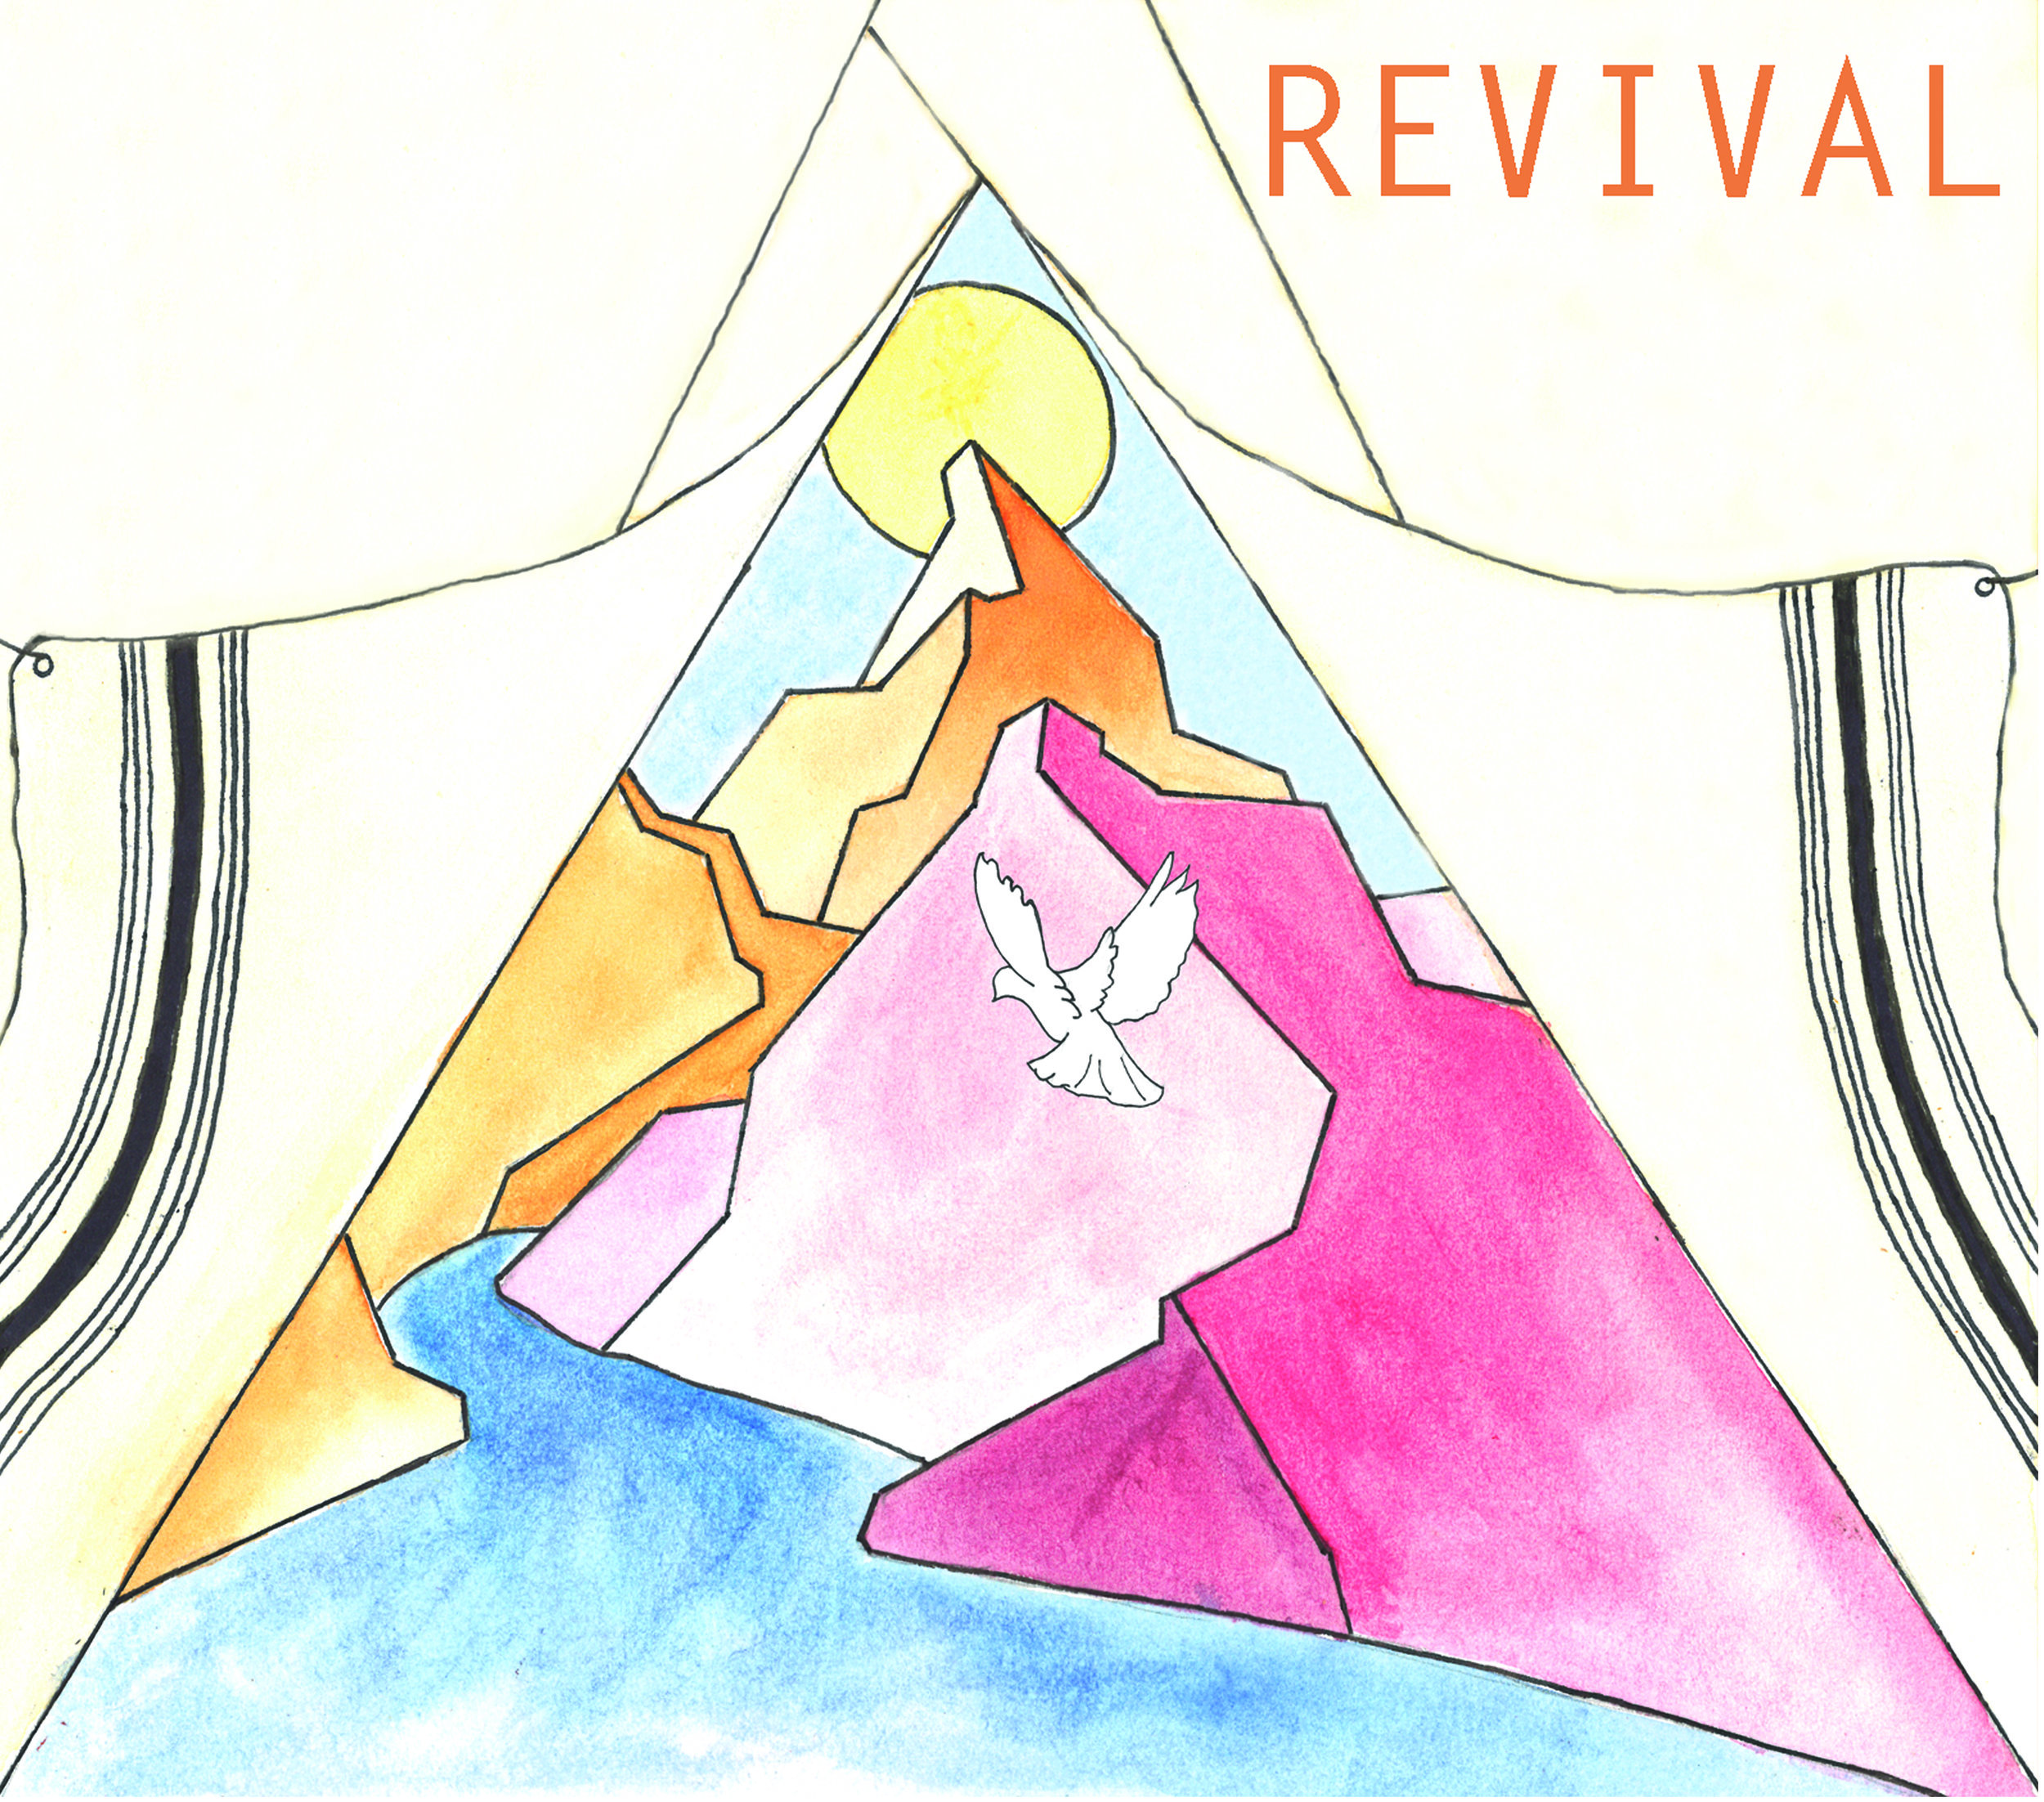 REVIVAL Album Cover Art.jpg